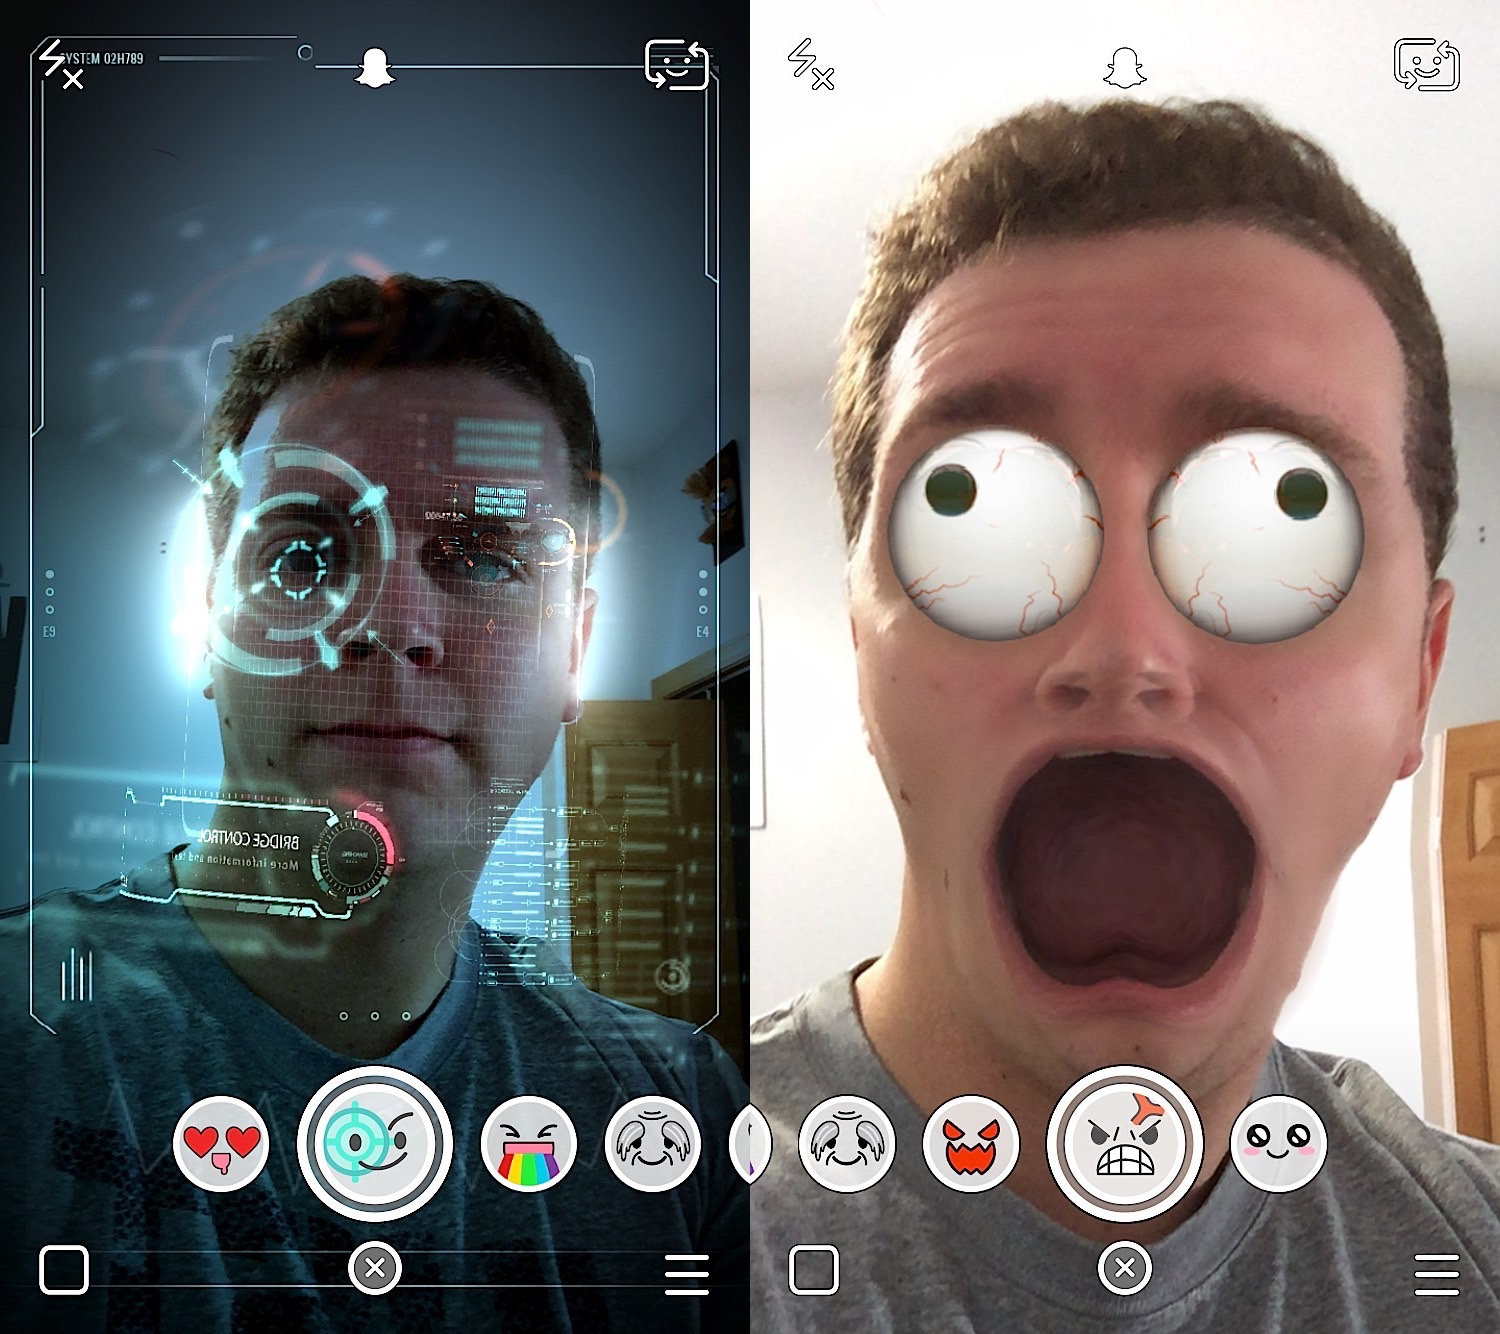 The Snapchat update adds Lenses, which can dramatically change the look of your selfies.